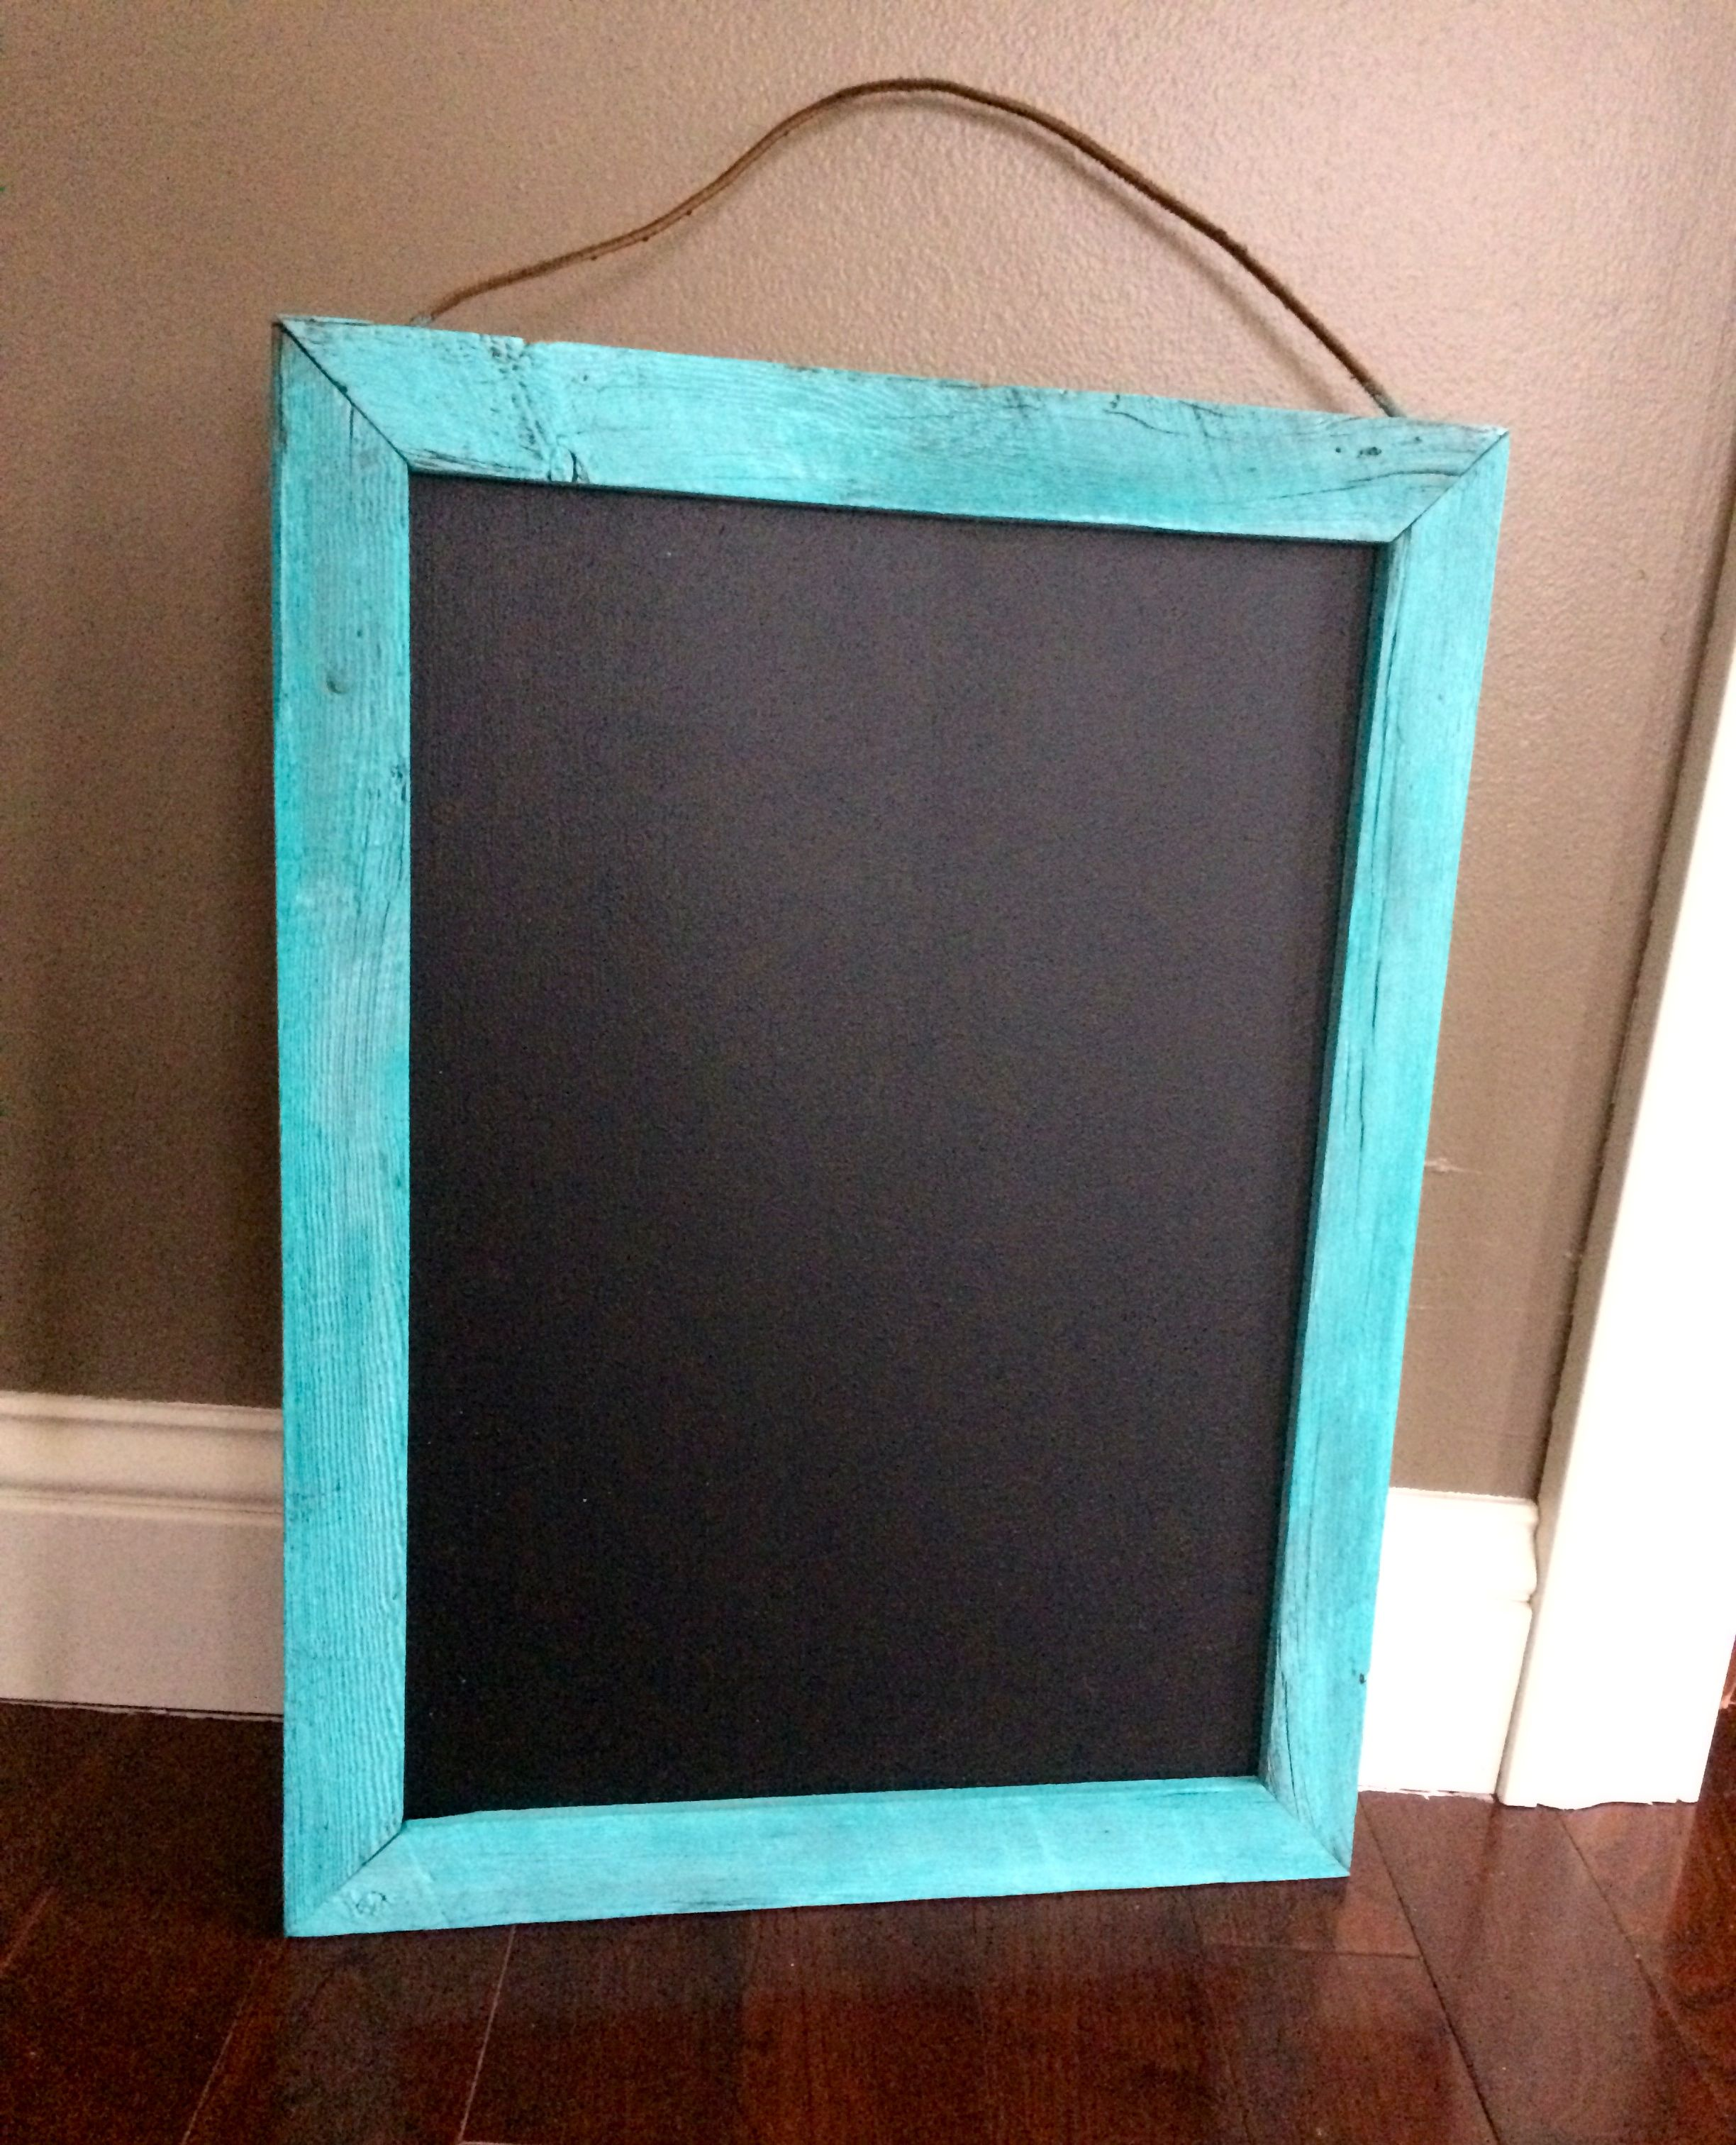 DIY Chalkboard Frame | Chalkboard frames, Diy chalkboard and Chalkboards